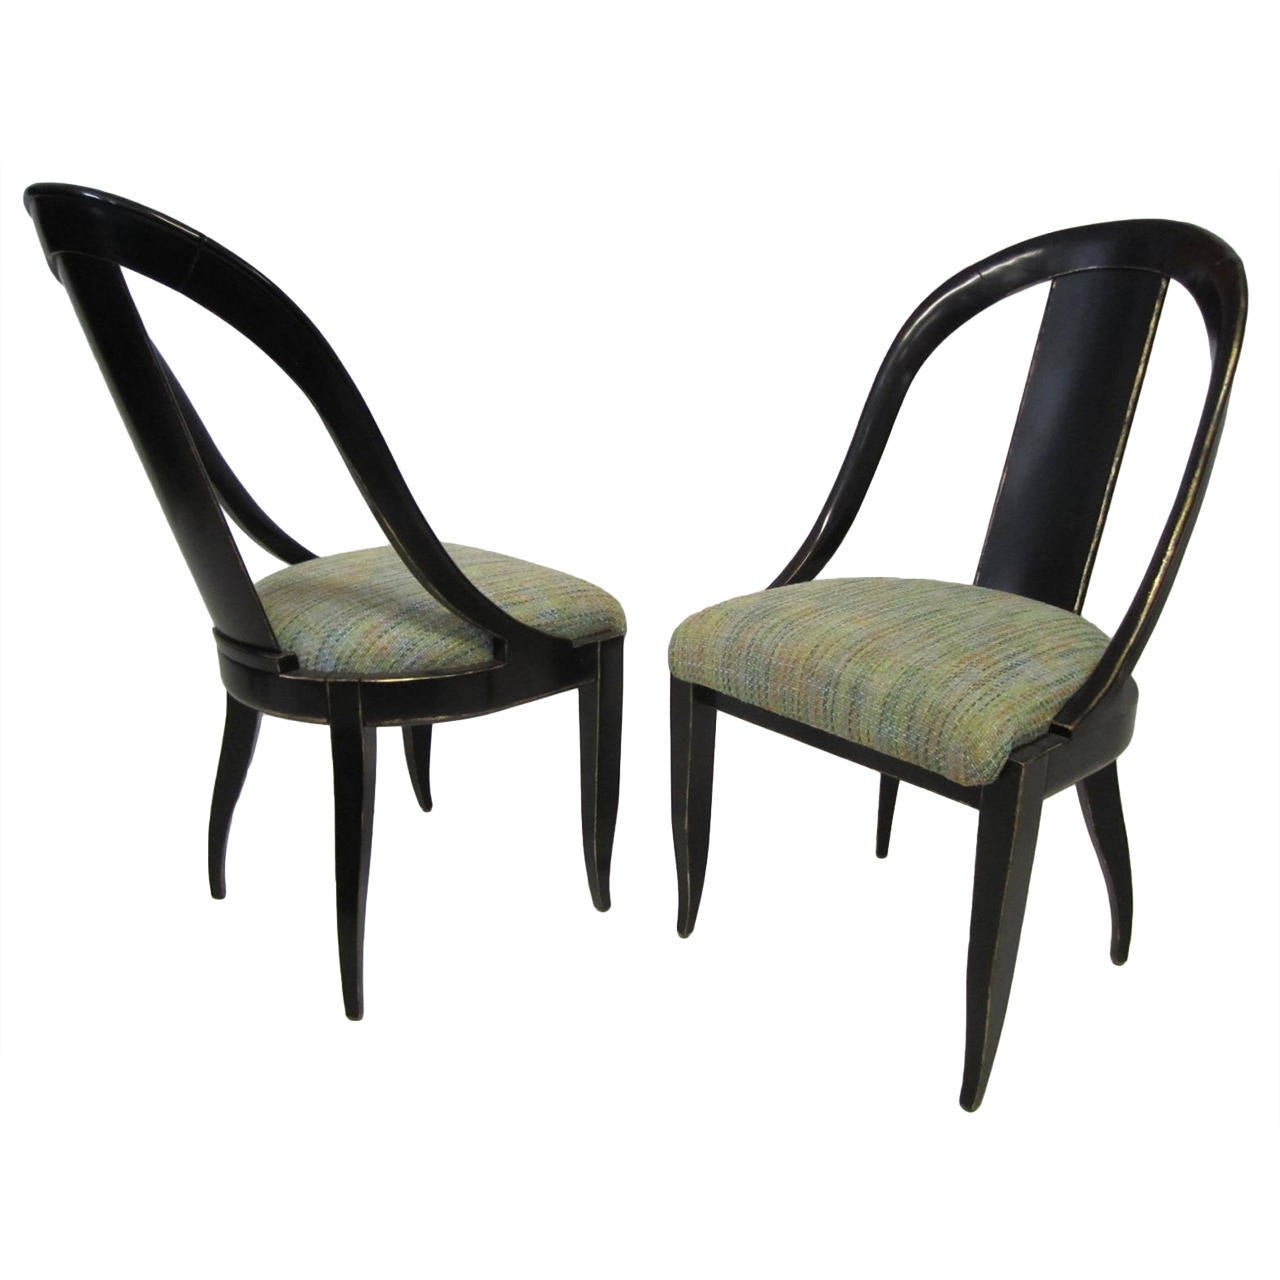 Sensuous Pair Of Swaim Spoon Back Lacquered Side Chairs, Mid Century Modern  For Sale